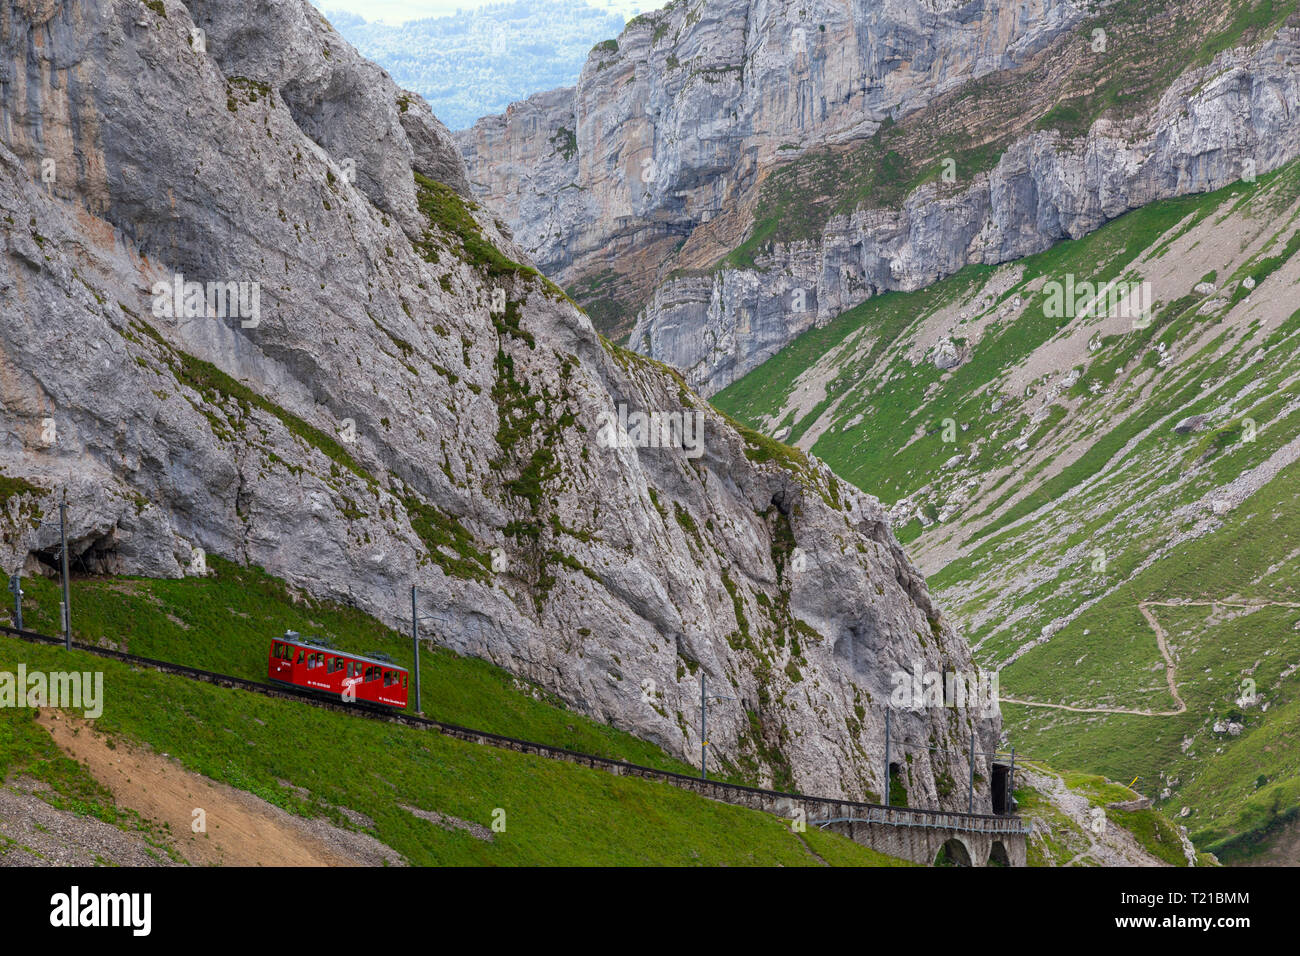 Cogwheel railway to Mount Pilatus, a recreational mountain near Lucerne, the 48% gradient making it the steepest cogwheel railw - Stock Image